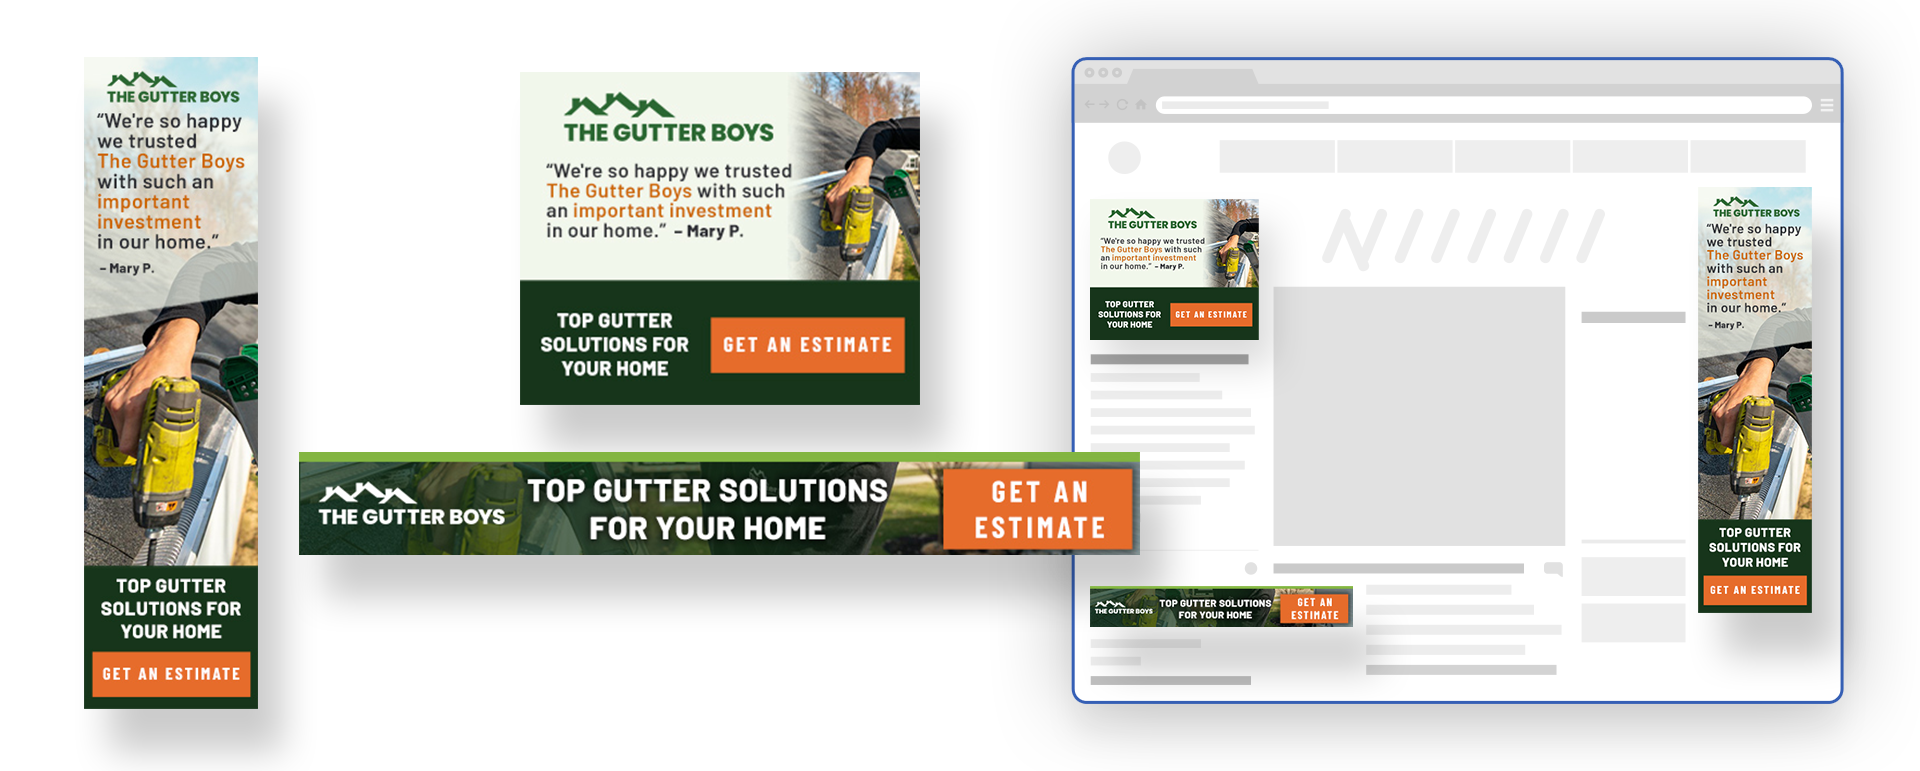 the gutter boys programmatic ads showcase image on computer;